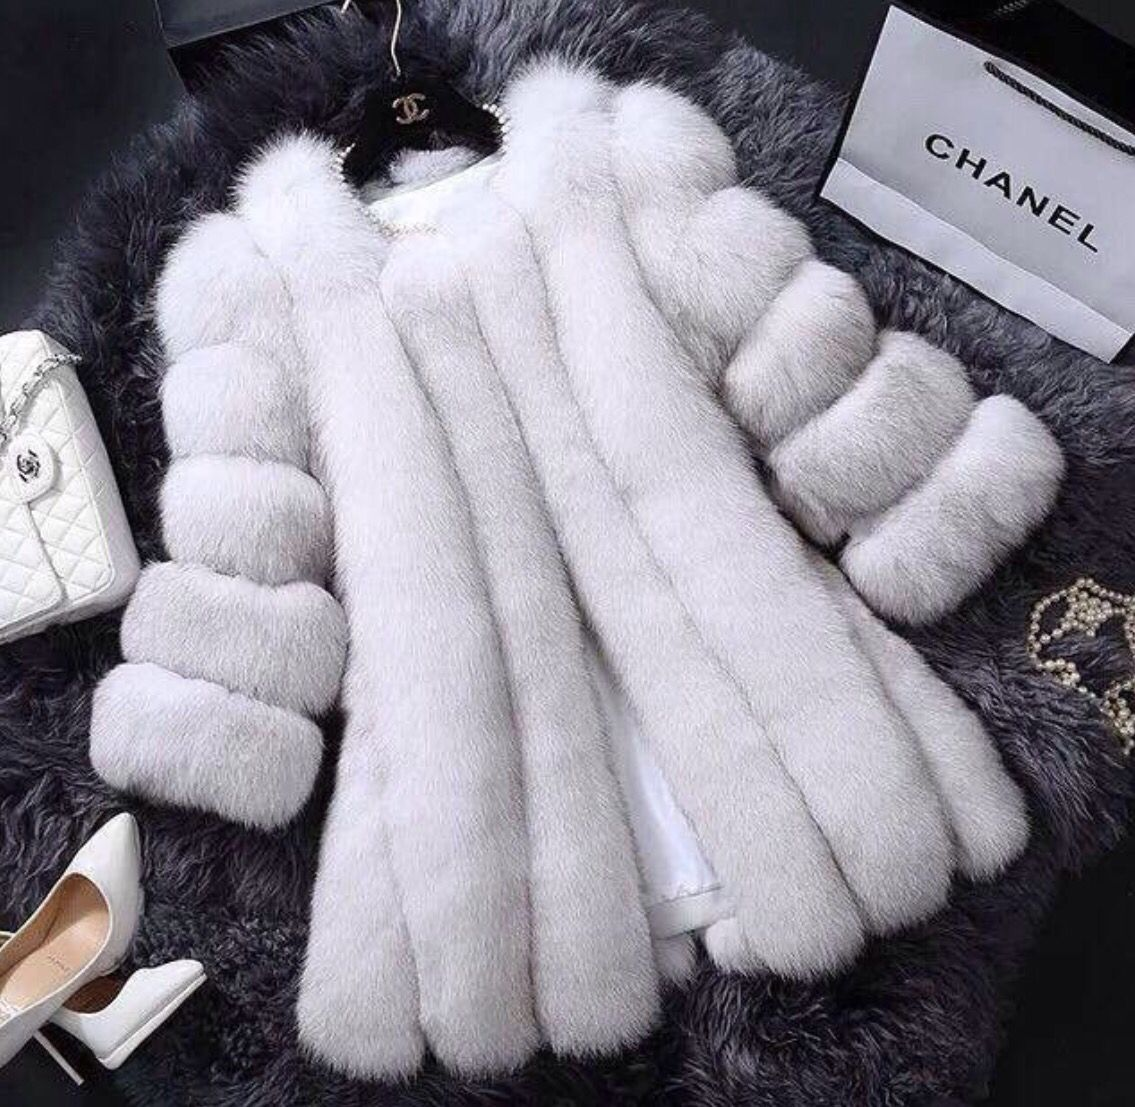 Romantic Free Shipping Thickening Fur Sets Of Bracelet Wrist Cuff Wrist Imitation Rabbit Hair Hand Ring Sleeve Imitation Fur Sleeves To Enjoy High Reputation In The International Market Apparel Accessories